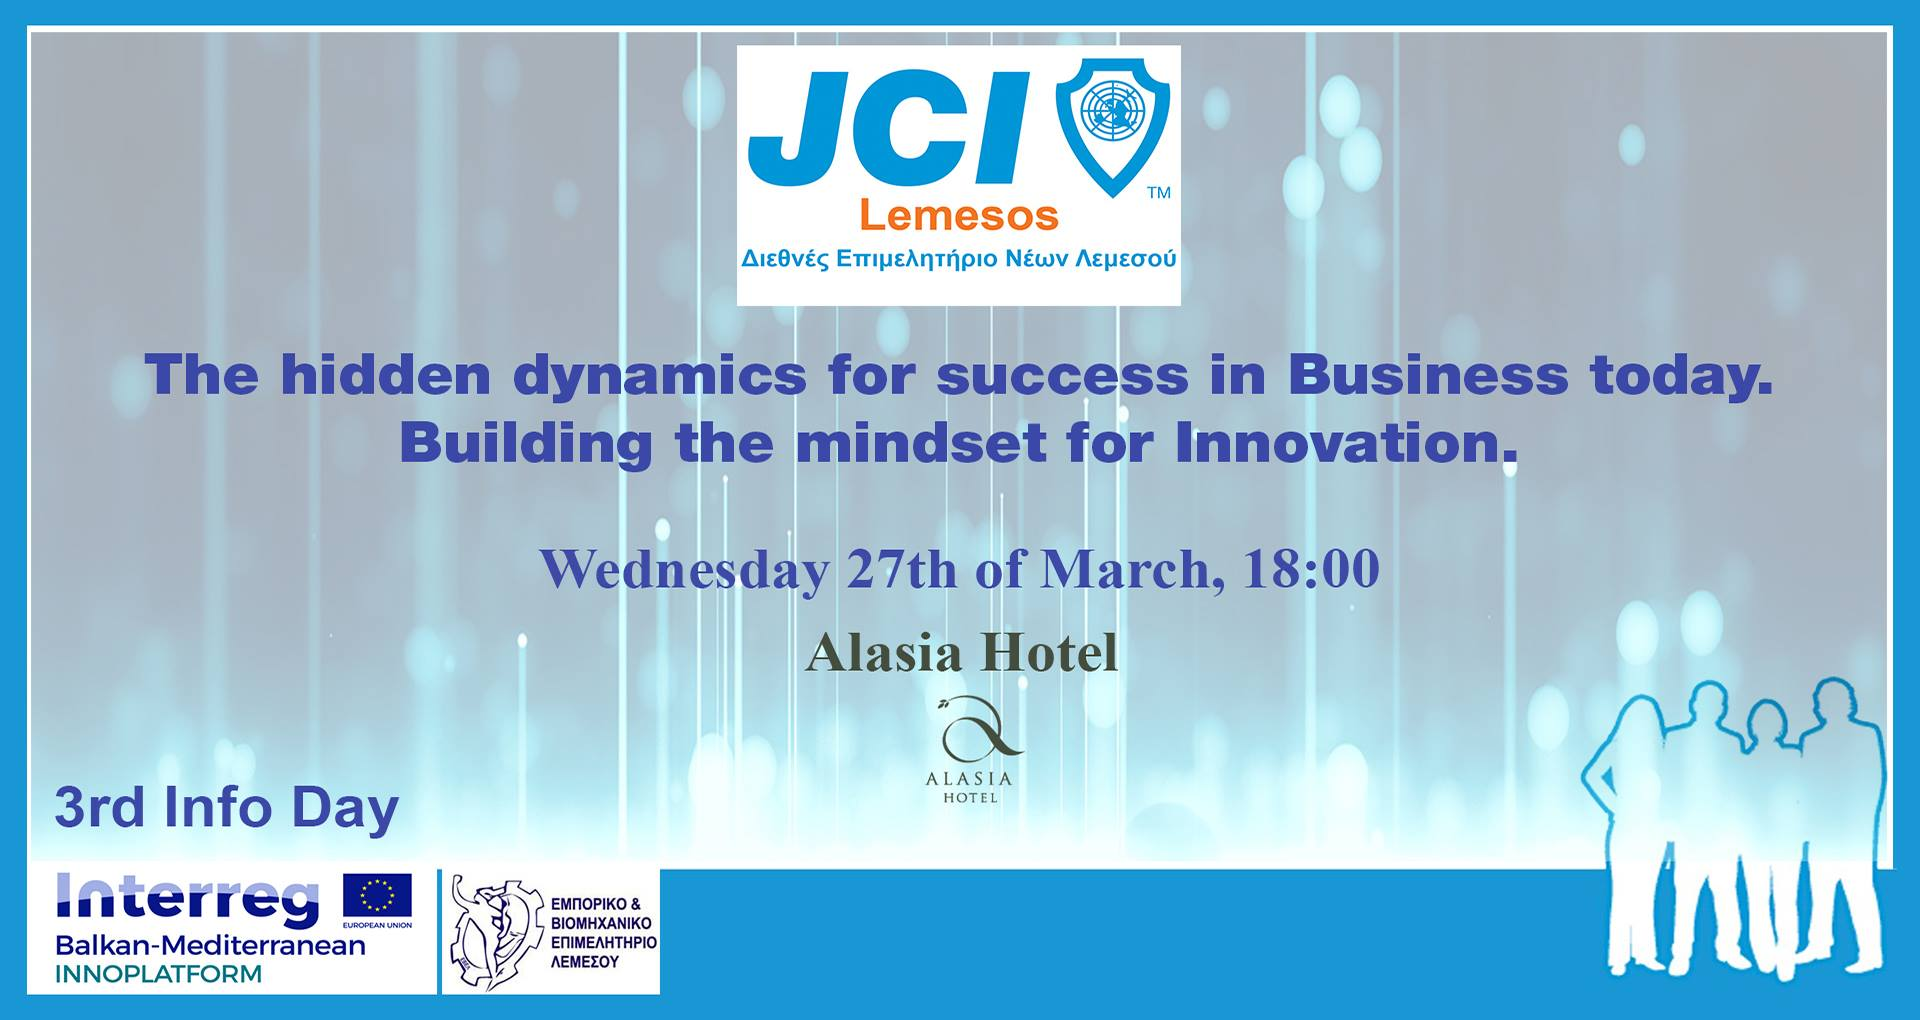 JCI Lemesos - Hidden Dynamics of Business and Innovation Event cyprus cyprusinno event events